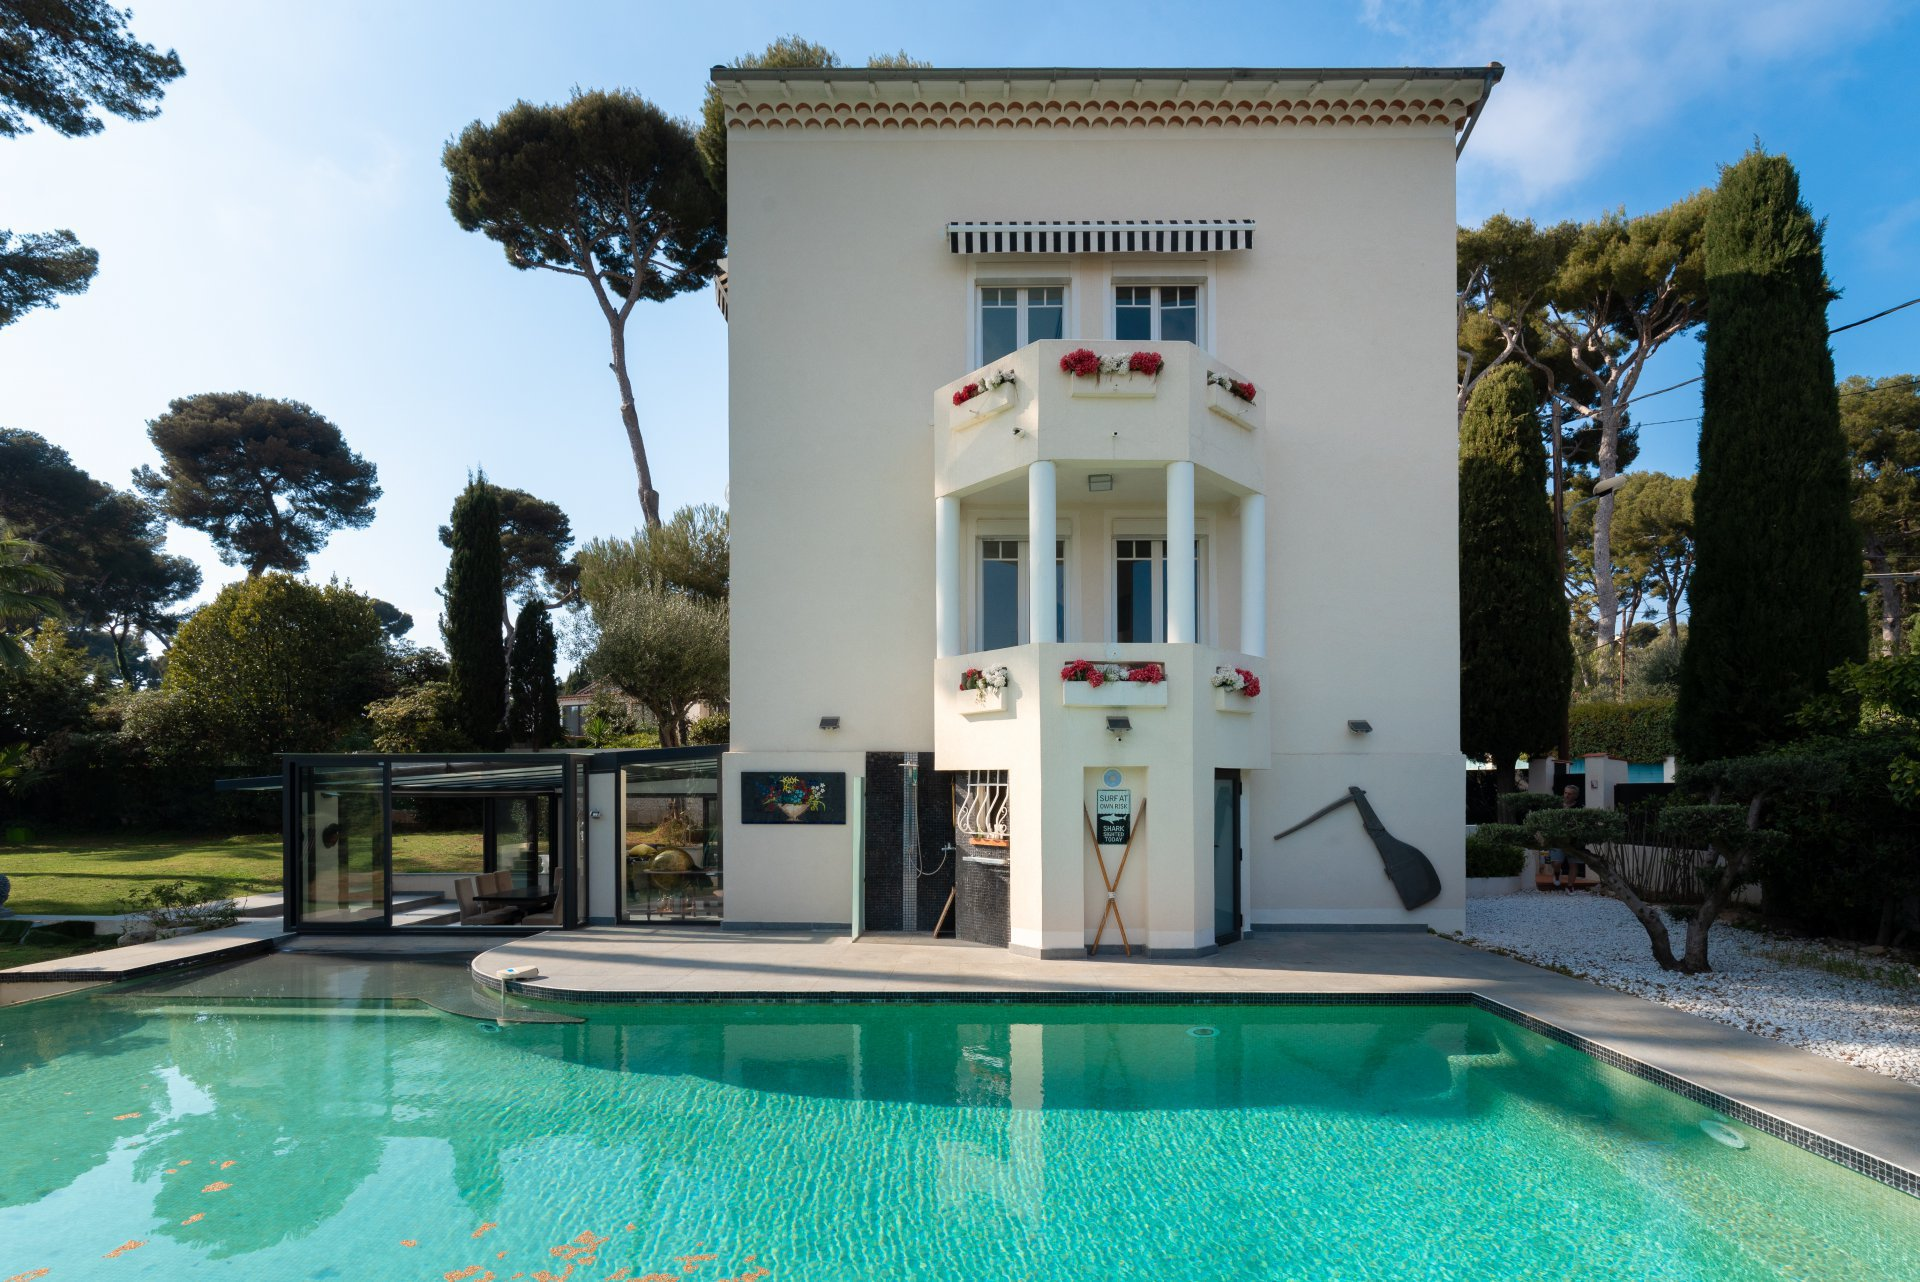 CAP D'ANTIBES - CONTEMPORY VILLA 4  BEDROOMS  CLOSE TO THE BEACH - SWIMMING POOL